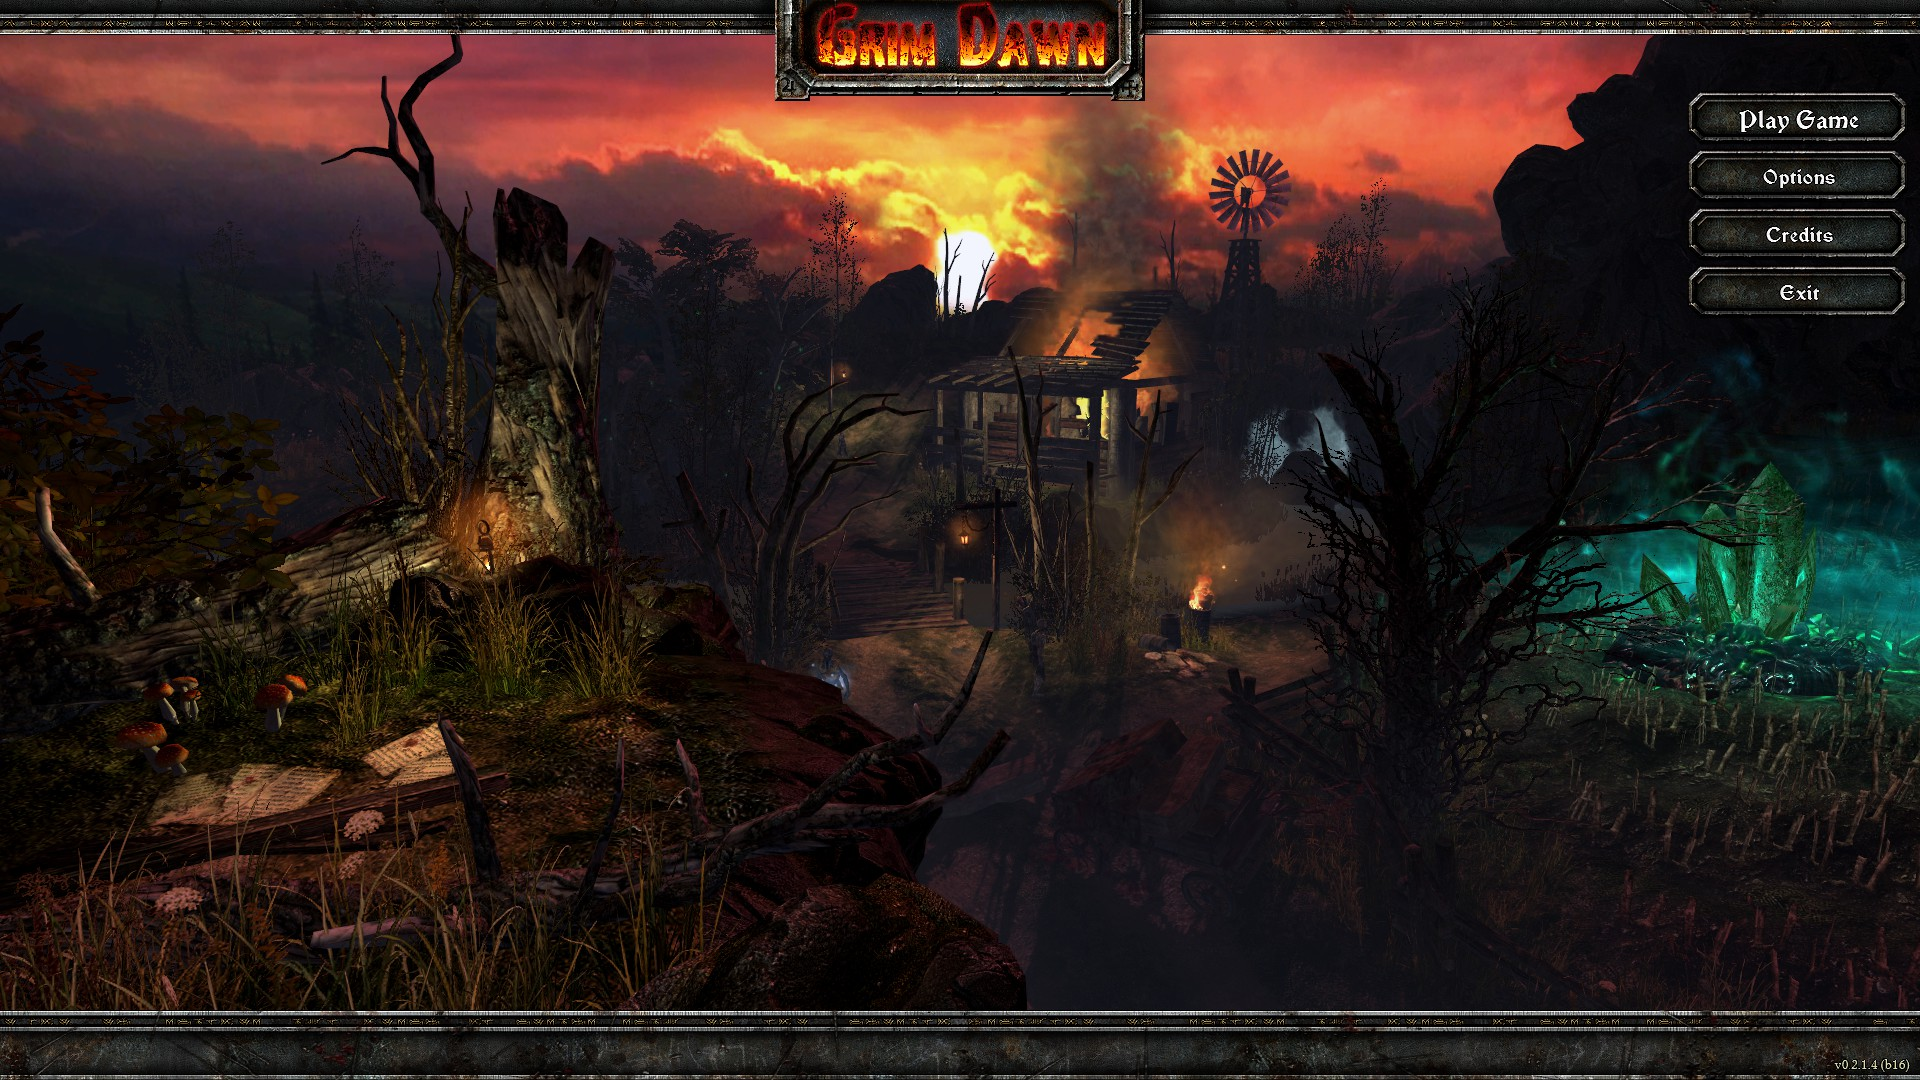 Gritty is the New Pretty: The Aesthetics of Grim Dawn